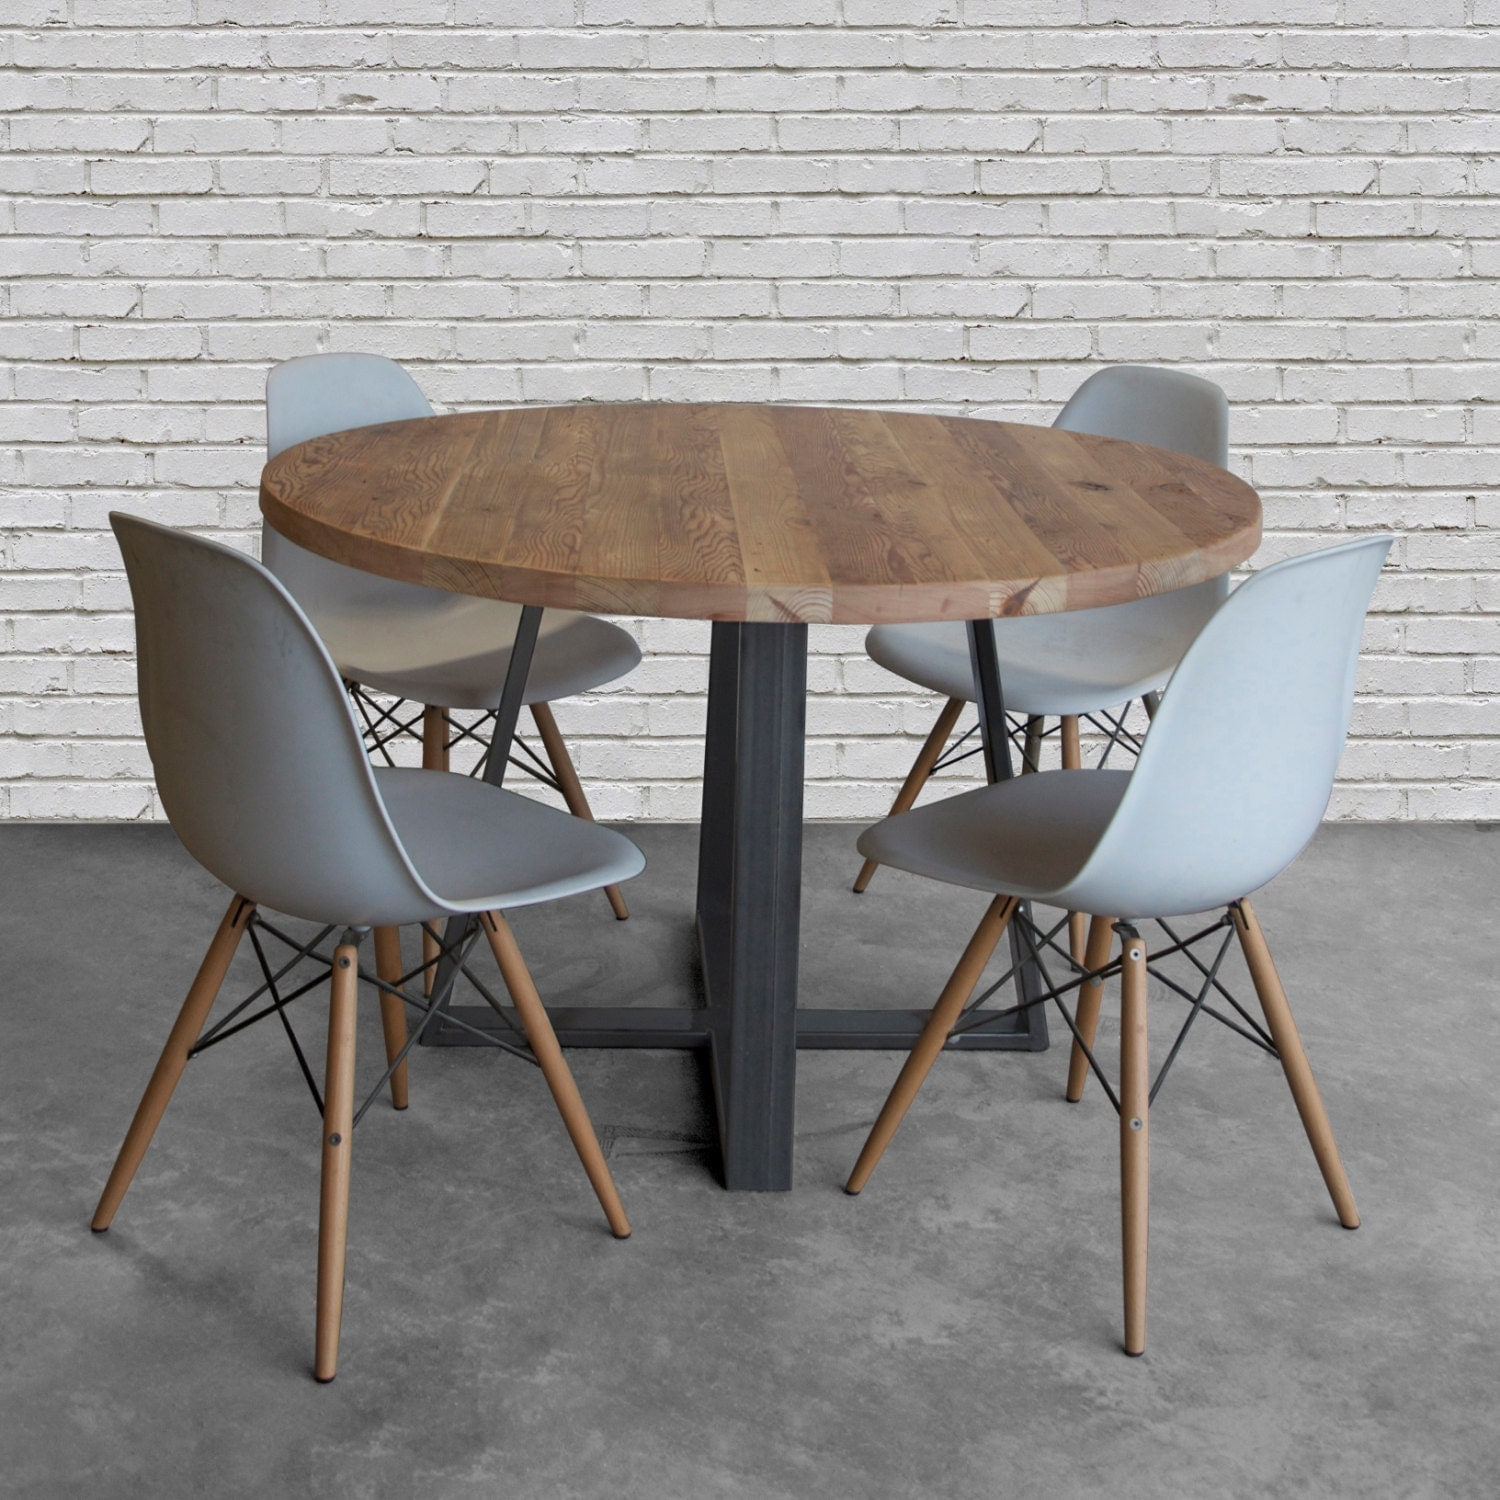 Round Wood Table In Reclaimed Wood And Steel Legs In Your